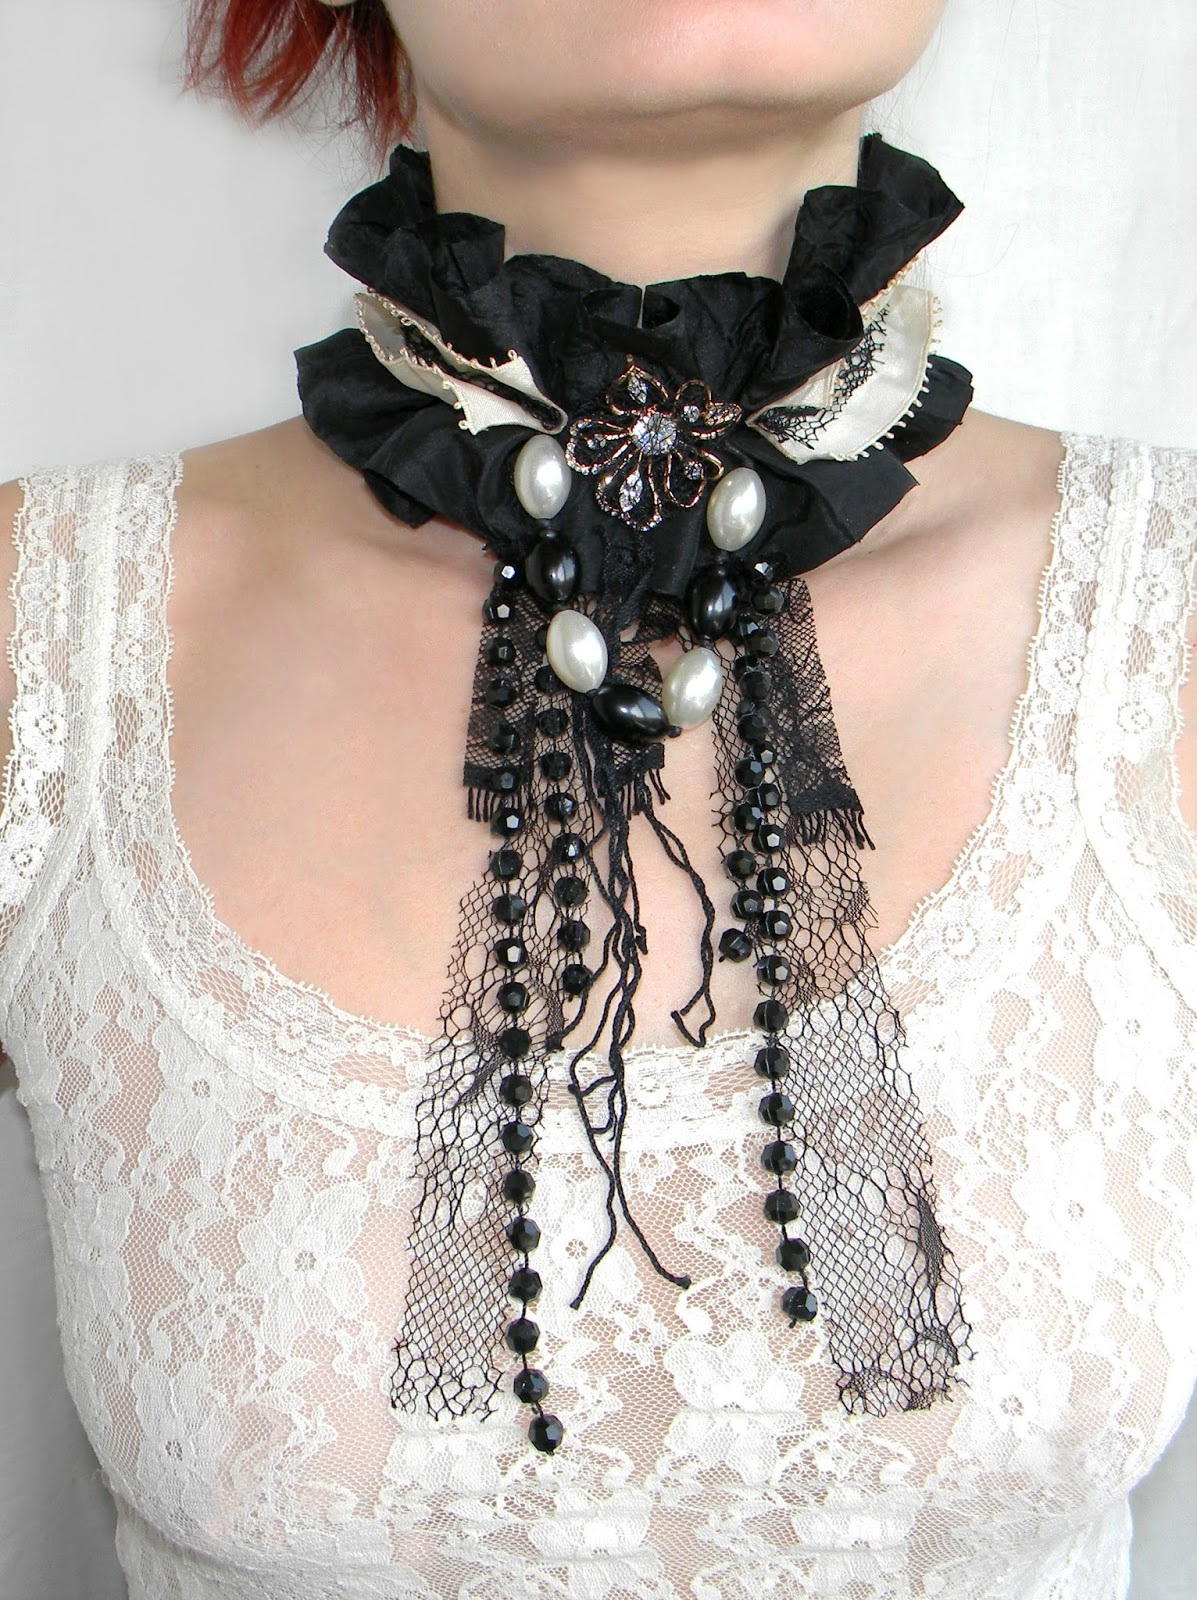 Victorian Gothic Noir Choker Necklace Textile Black and Creamy Ruffled Choker